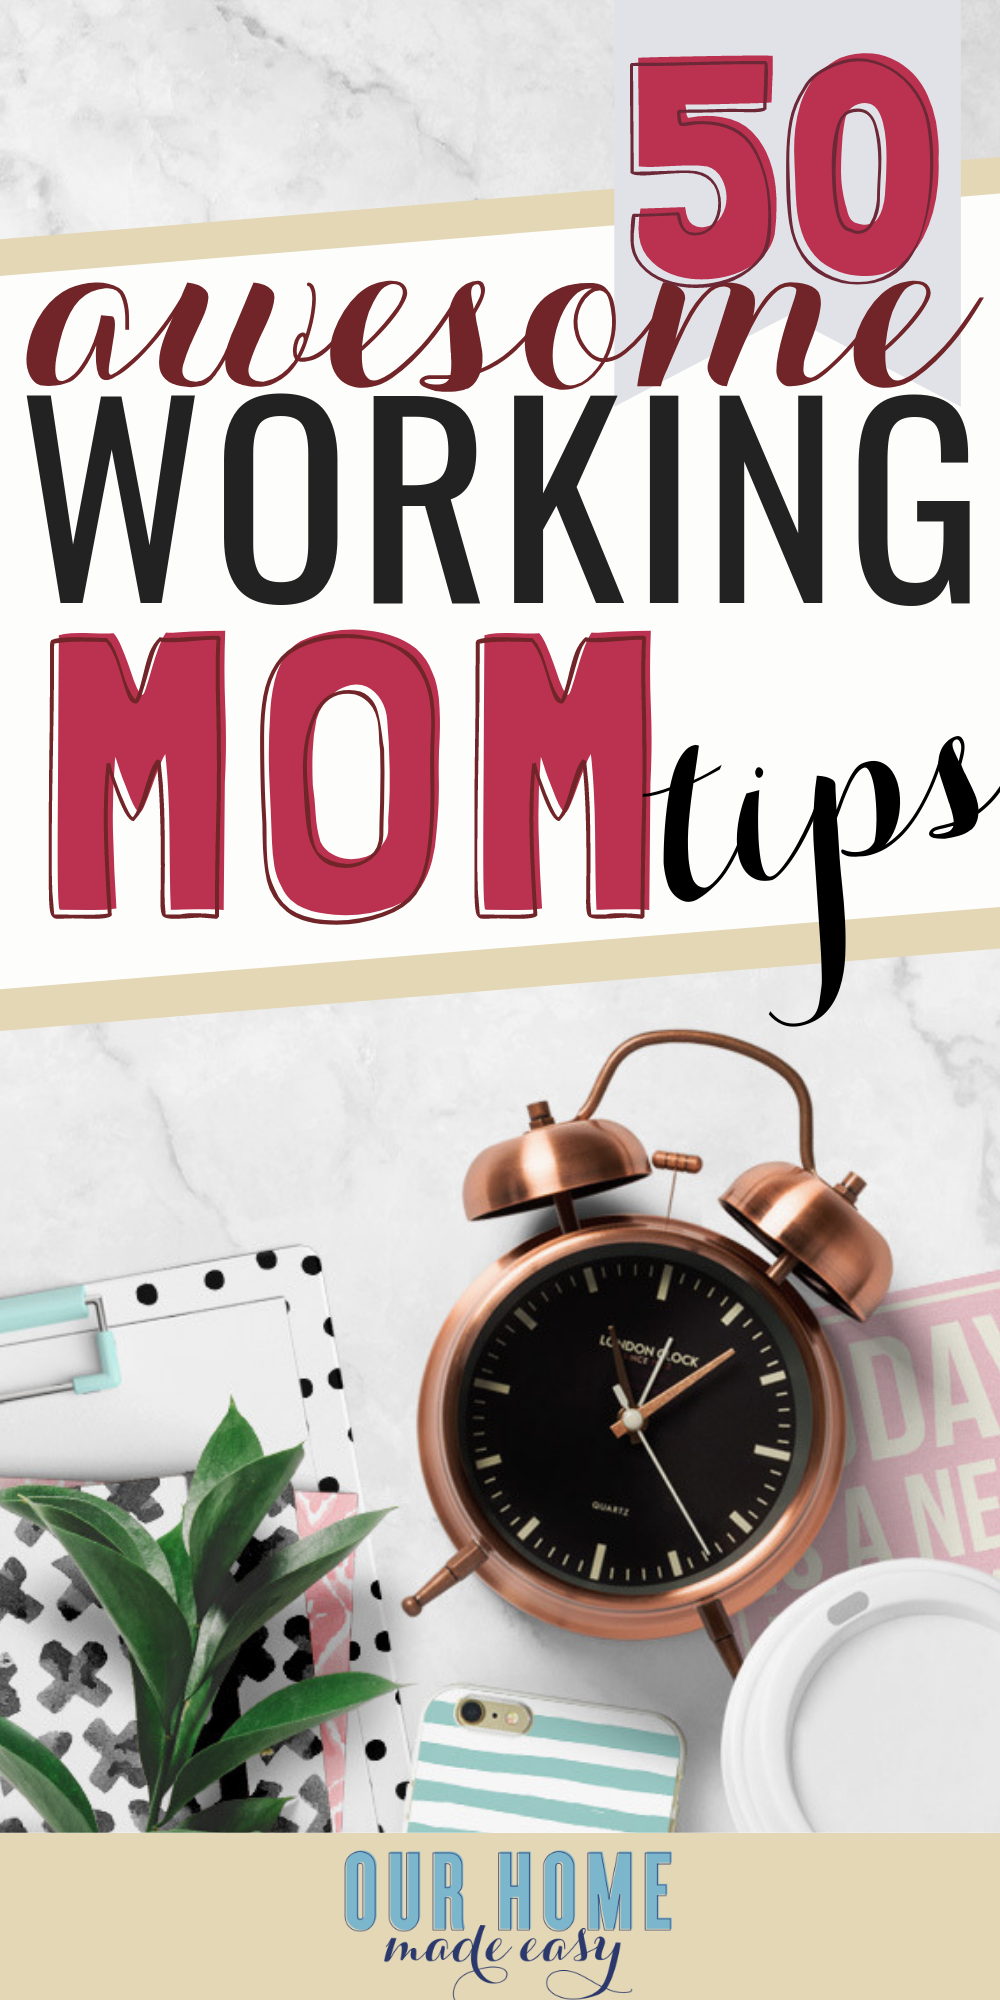 50 working mom resources, tips, and tricks to save time and boost productivity